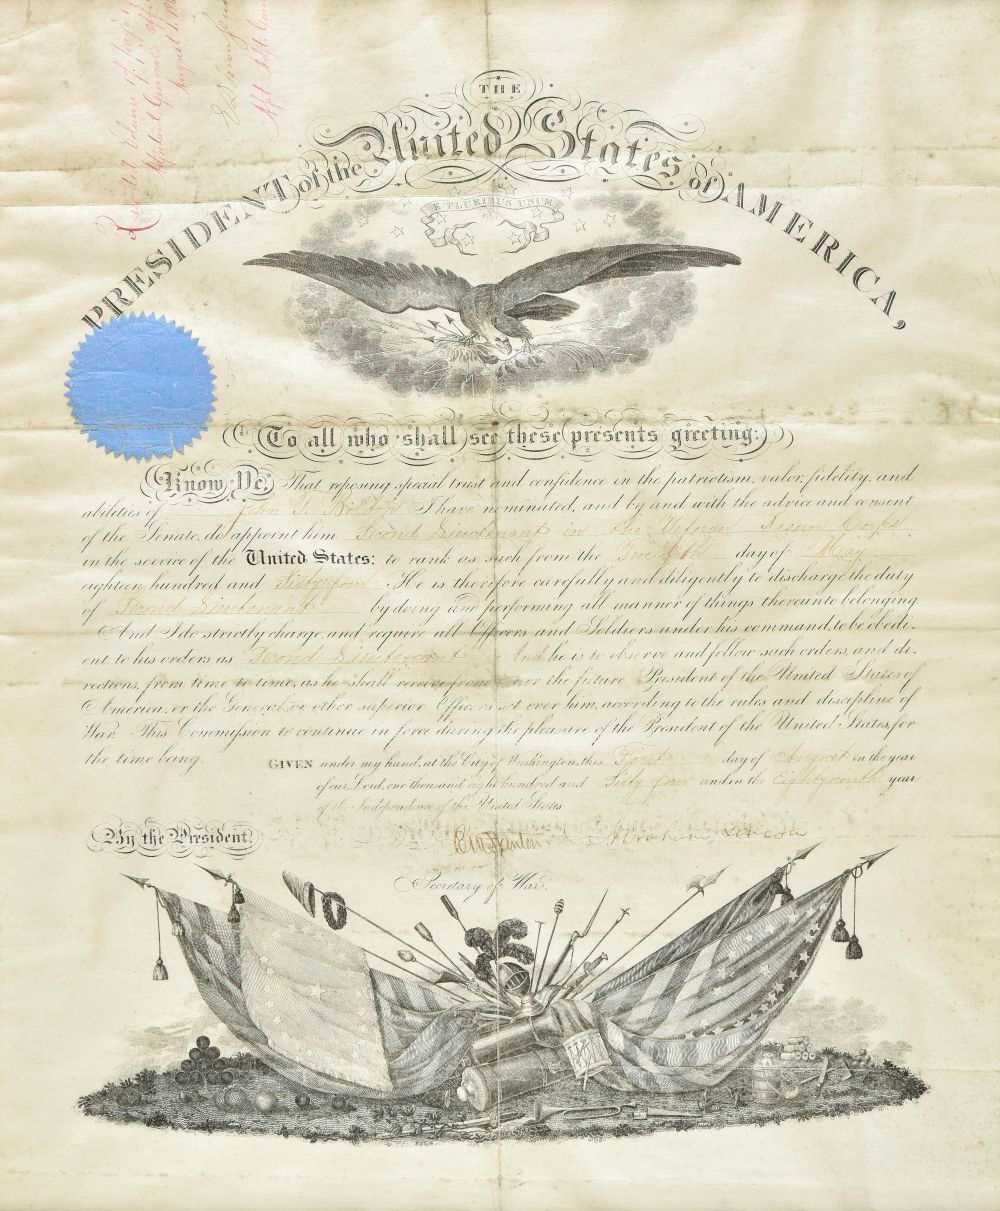 Lot 380-Lincoln (Abraham). The Assassination of Abraham Lincoln Documents